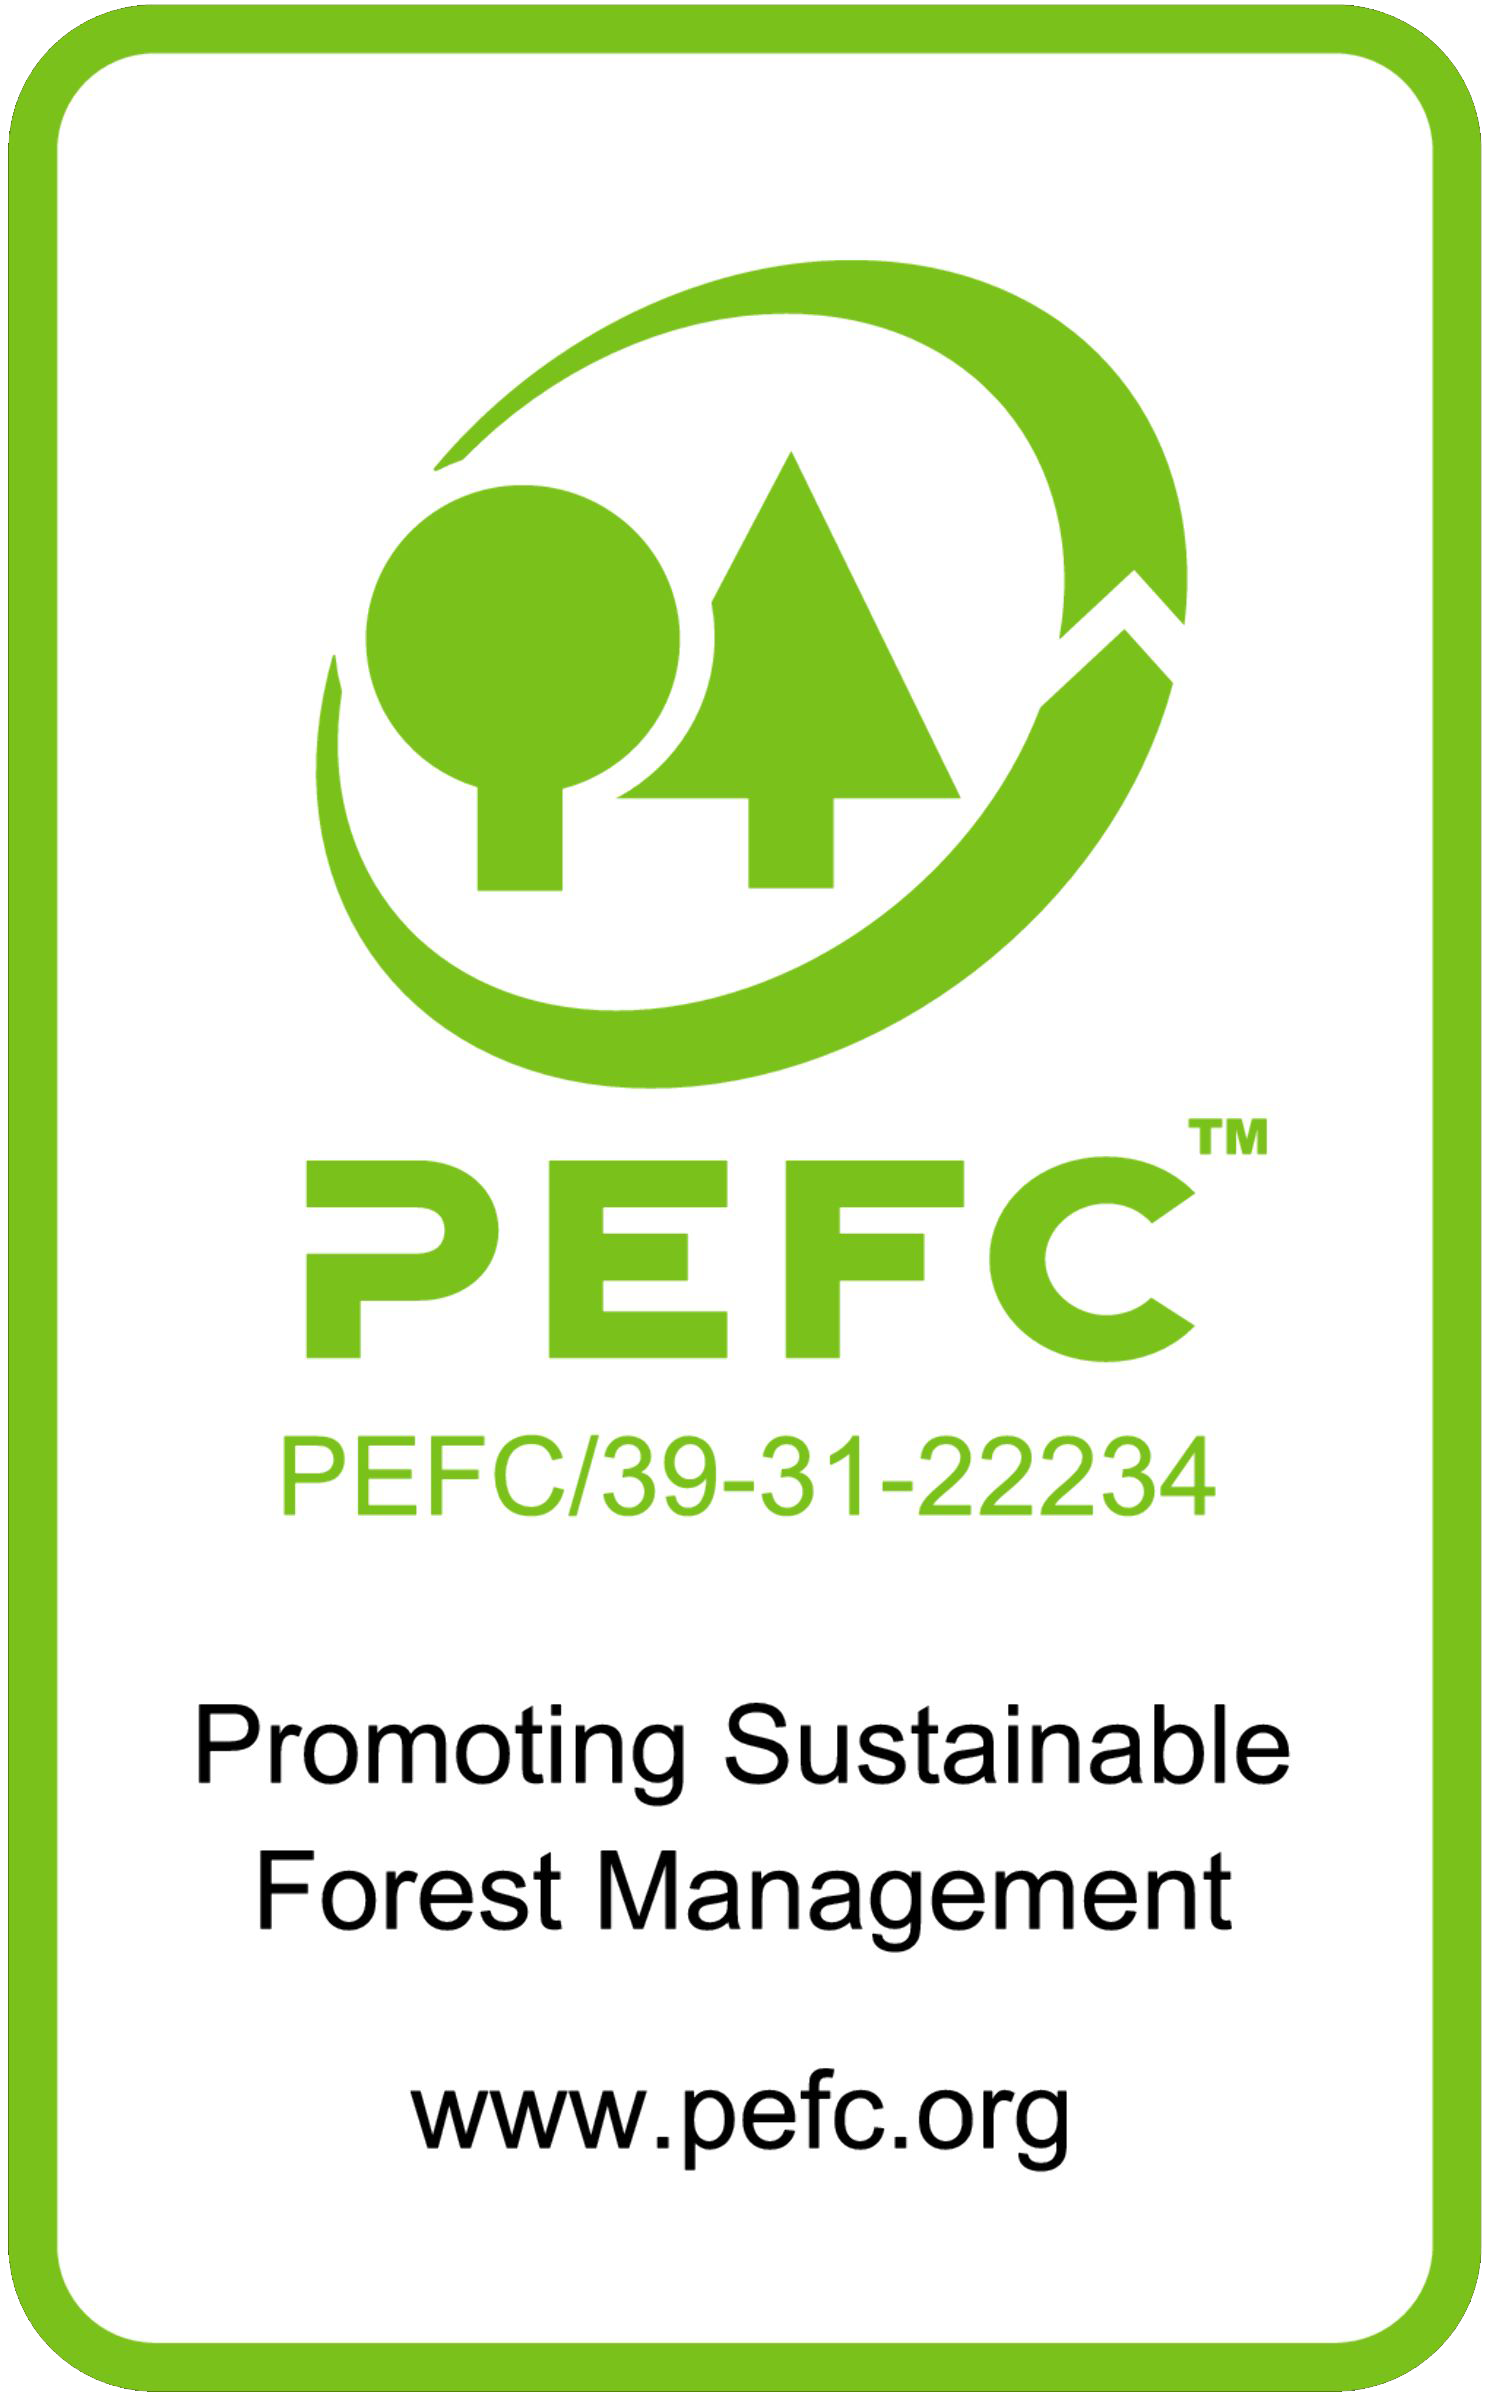 pefc-logo p (out product)